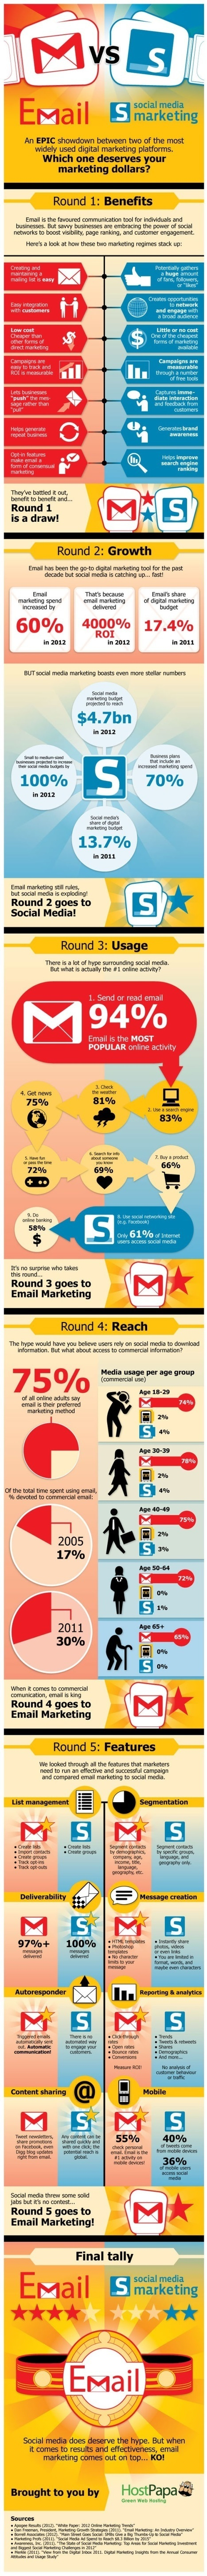 Who wins the marketing war between email versus social media? [INFOGRAPHIC] - Tnooz | digital marketing strategy | Scoop.it